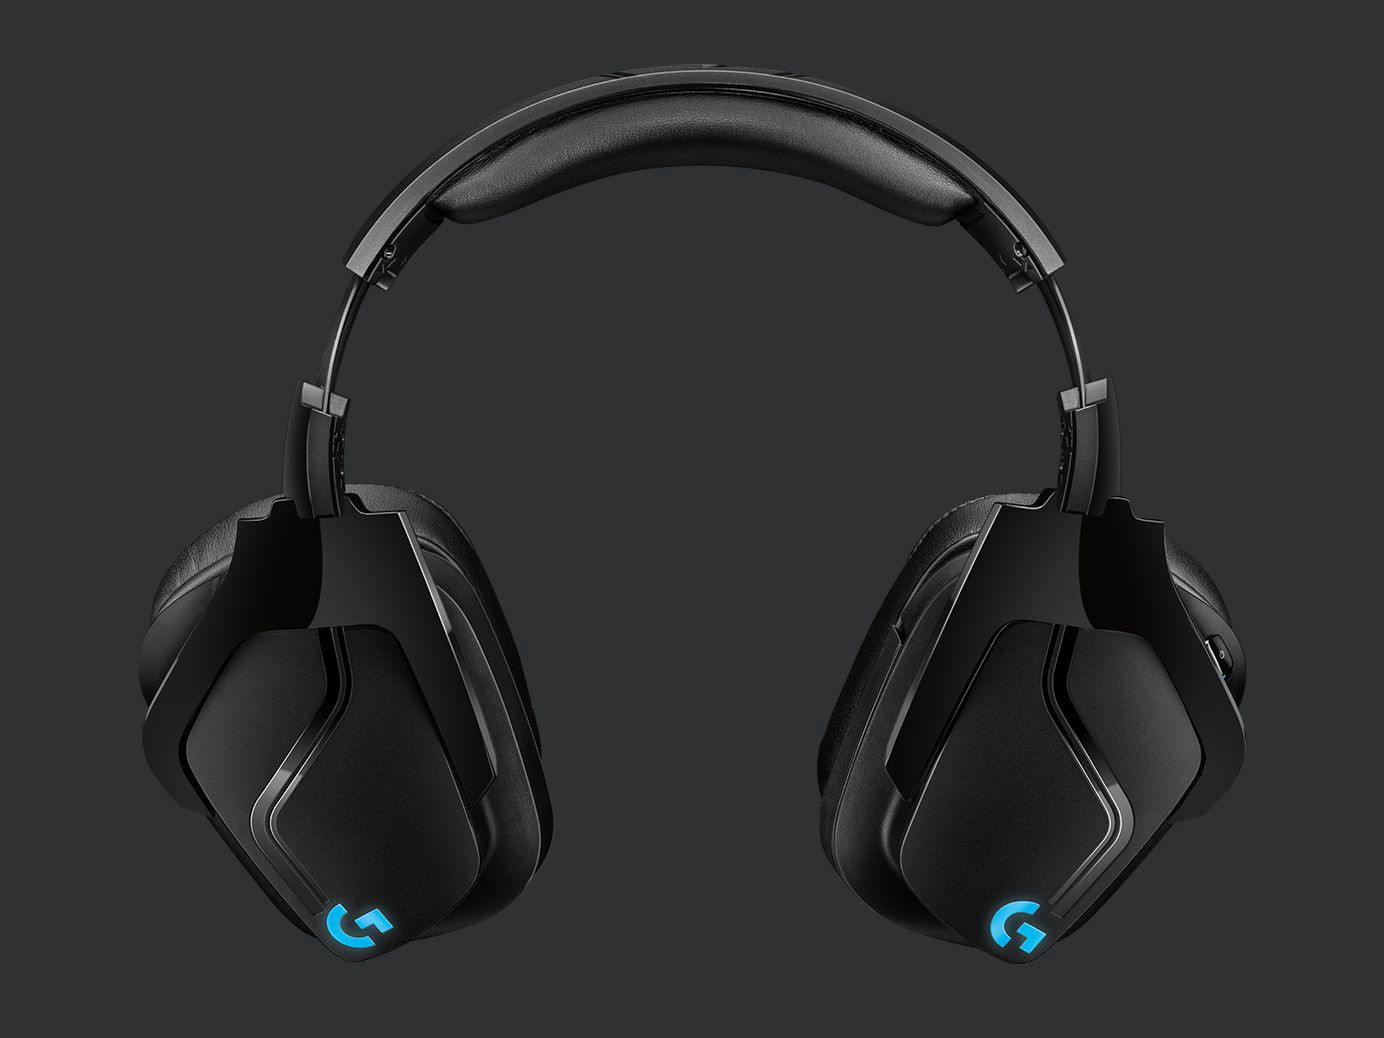 I Don't Understand Logitech's New Headsets - Alex Rowe - Medium